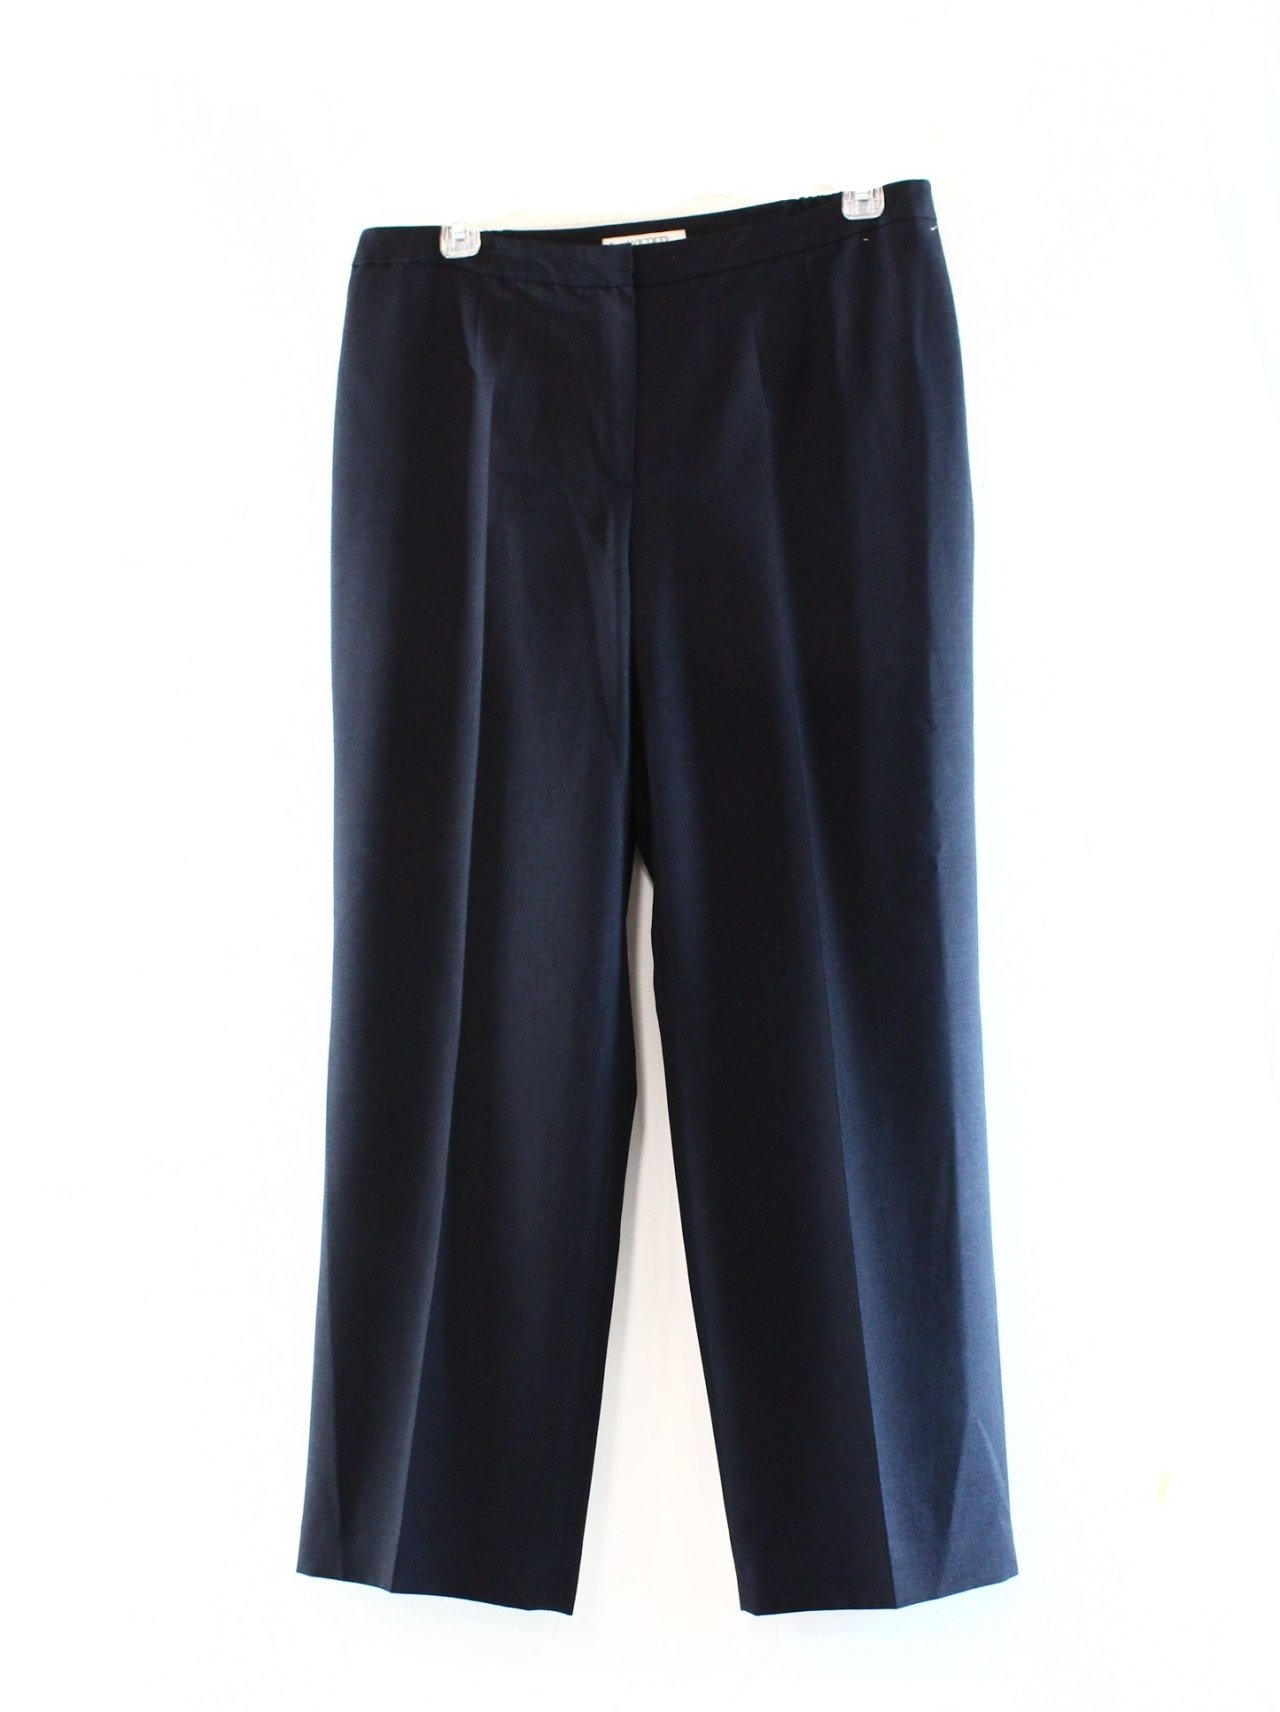 Wonderful  Hers Clothing Pants Blue Navy Women39s Size 2X29 Slim Leg Dress Pants